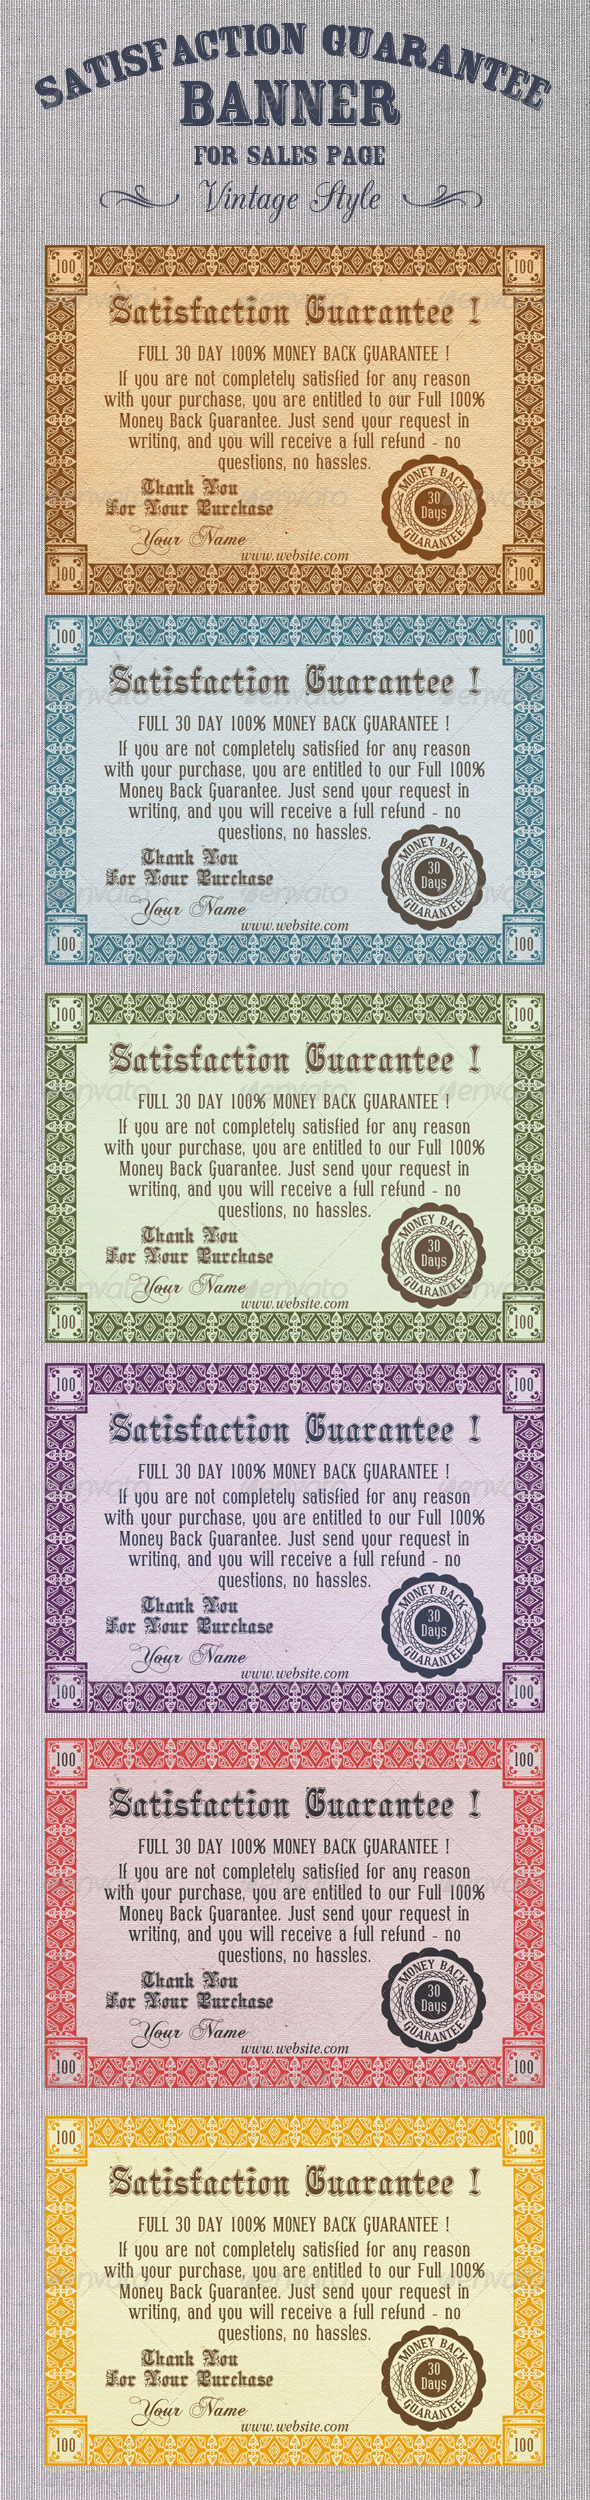 GraphicRiver Satisfaction Guarantee Banner 5605127